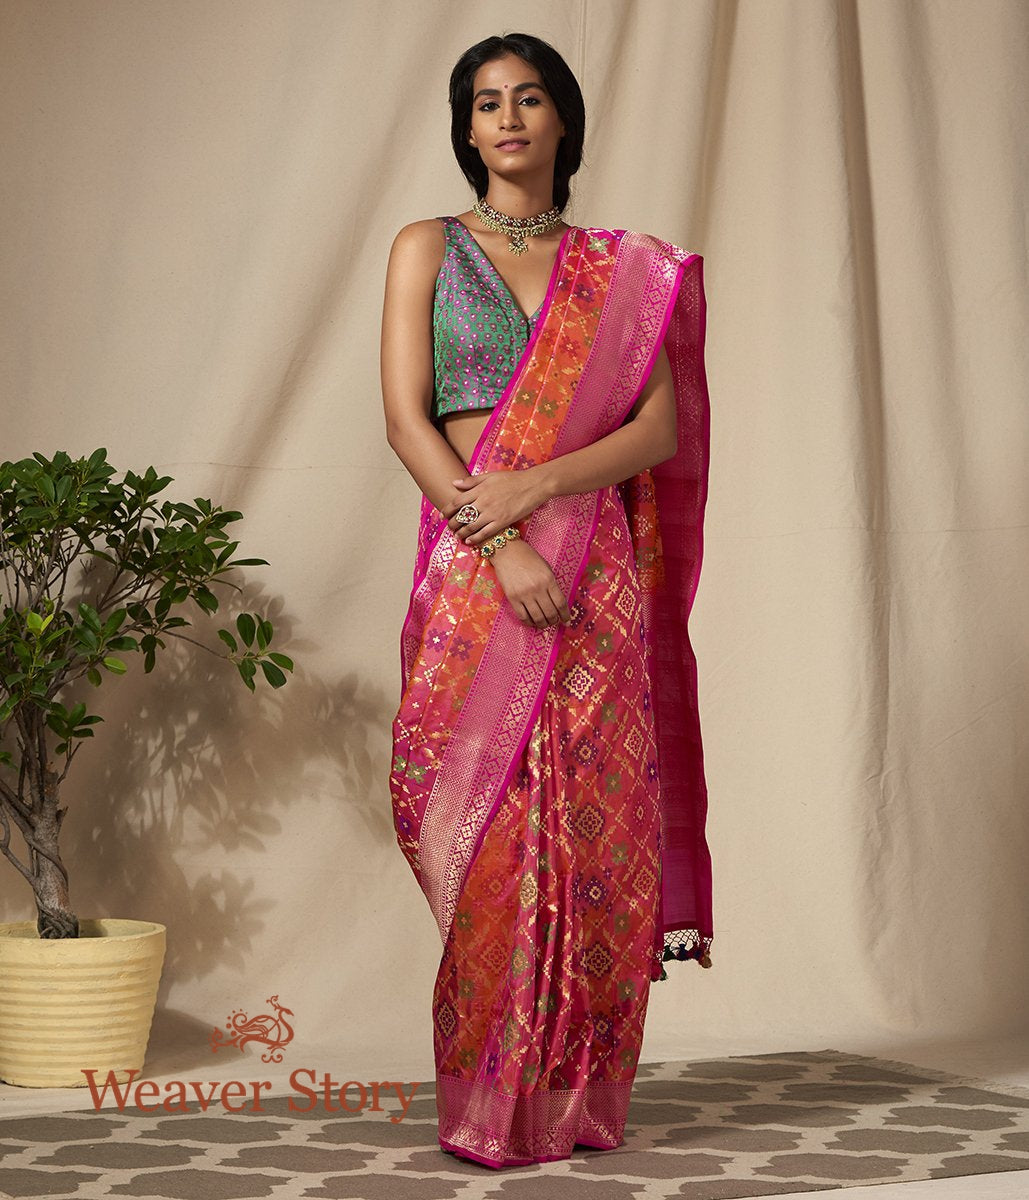 Handwoven Orange Pink Meenakari Banarasi Patola Saree